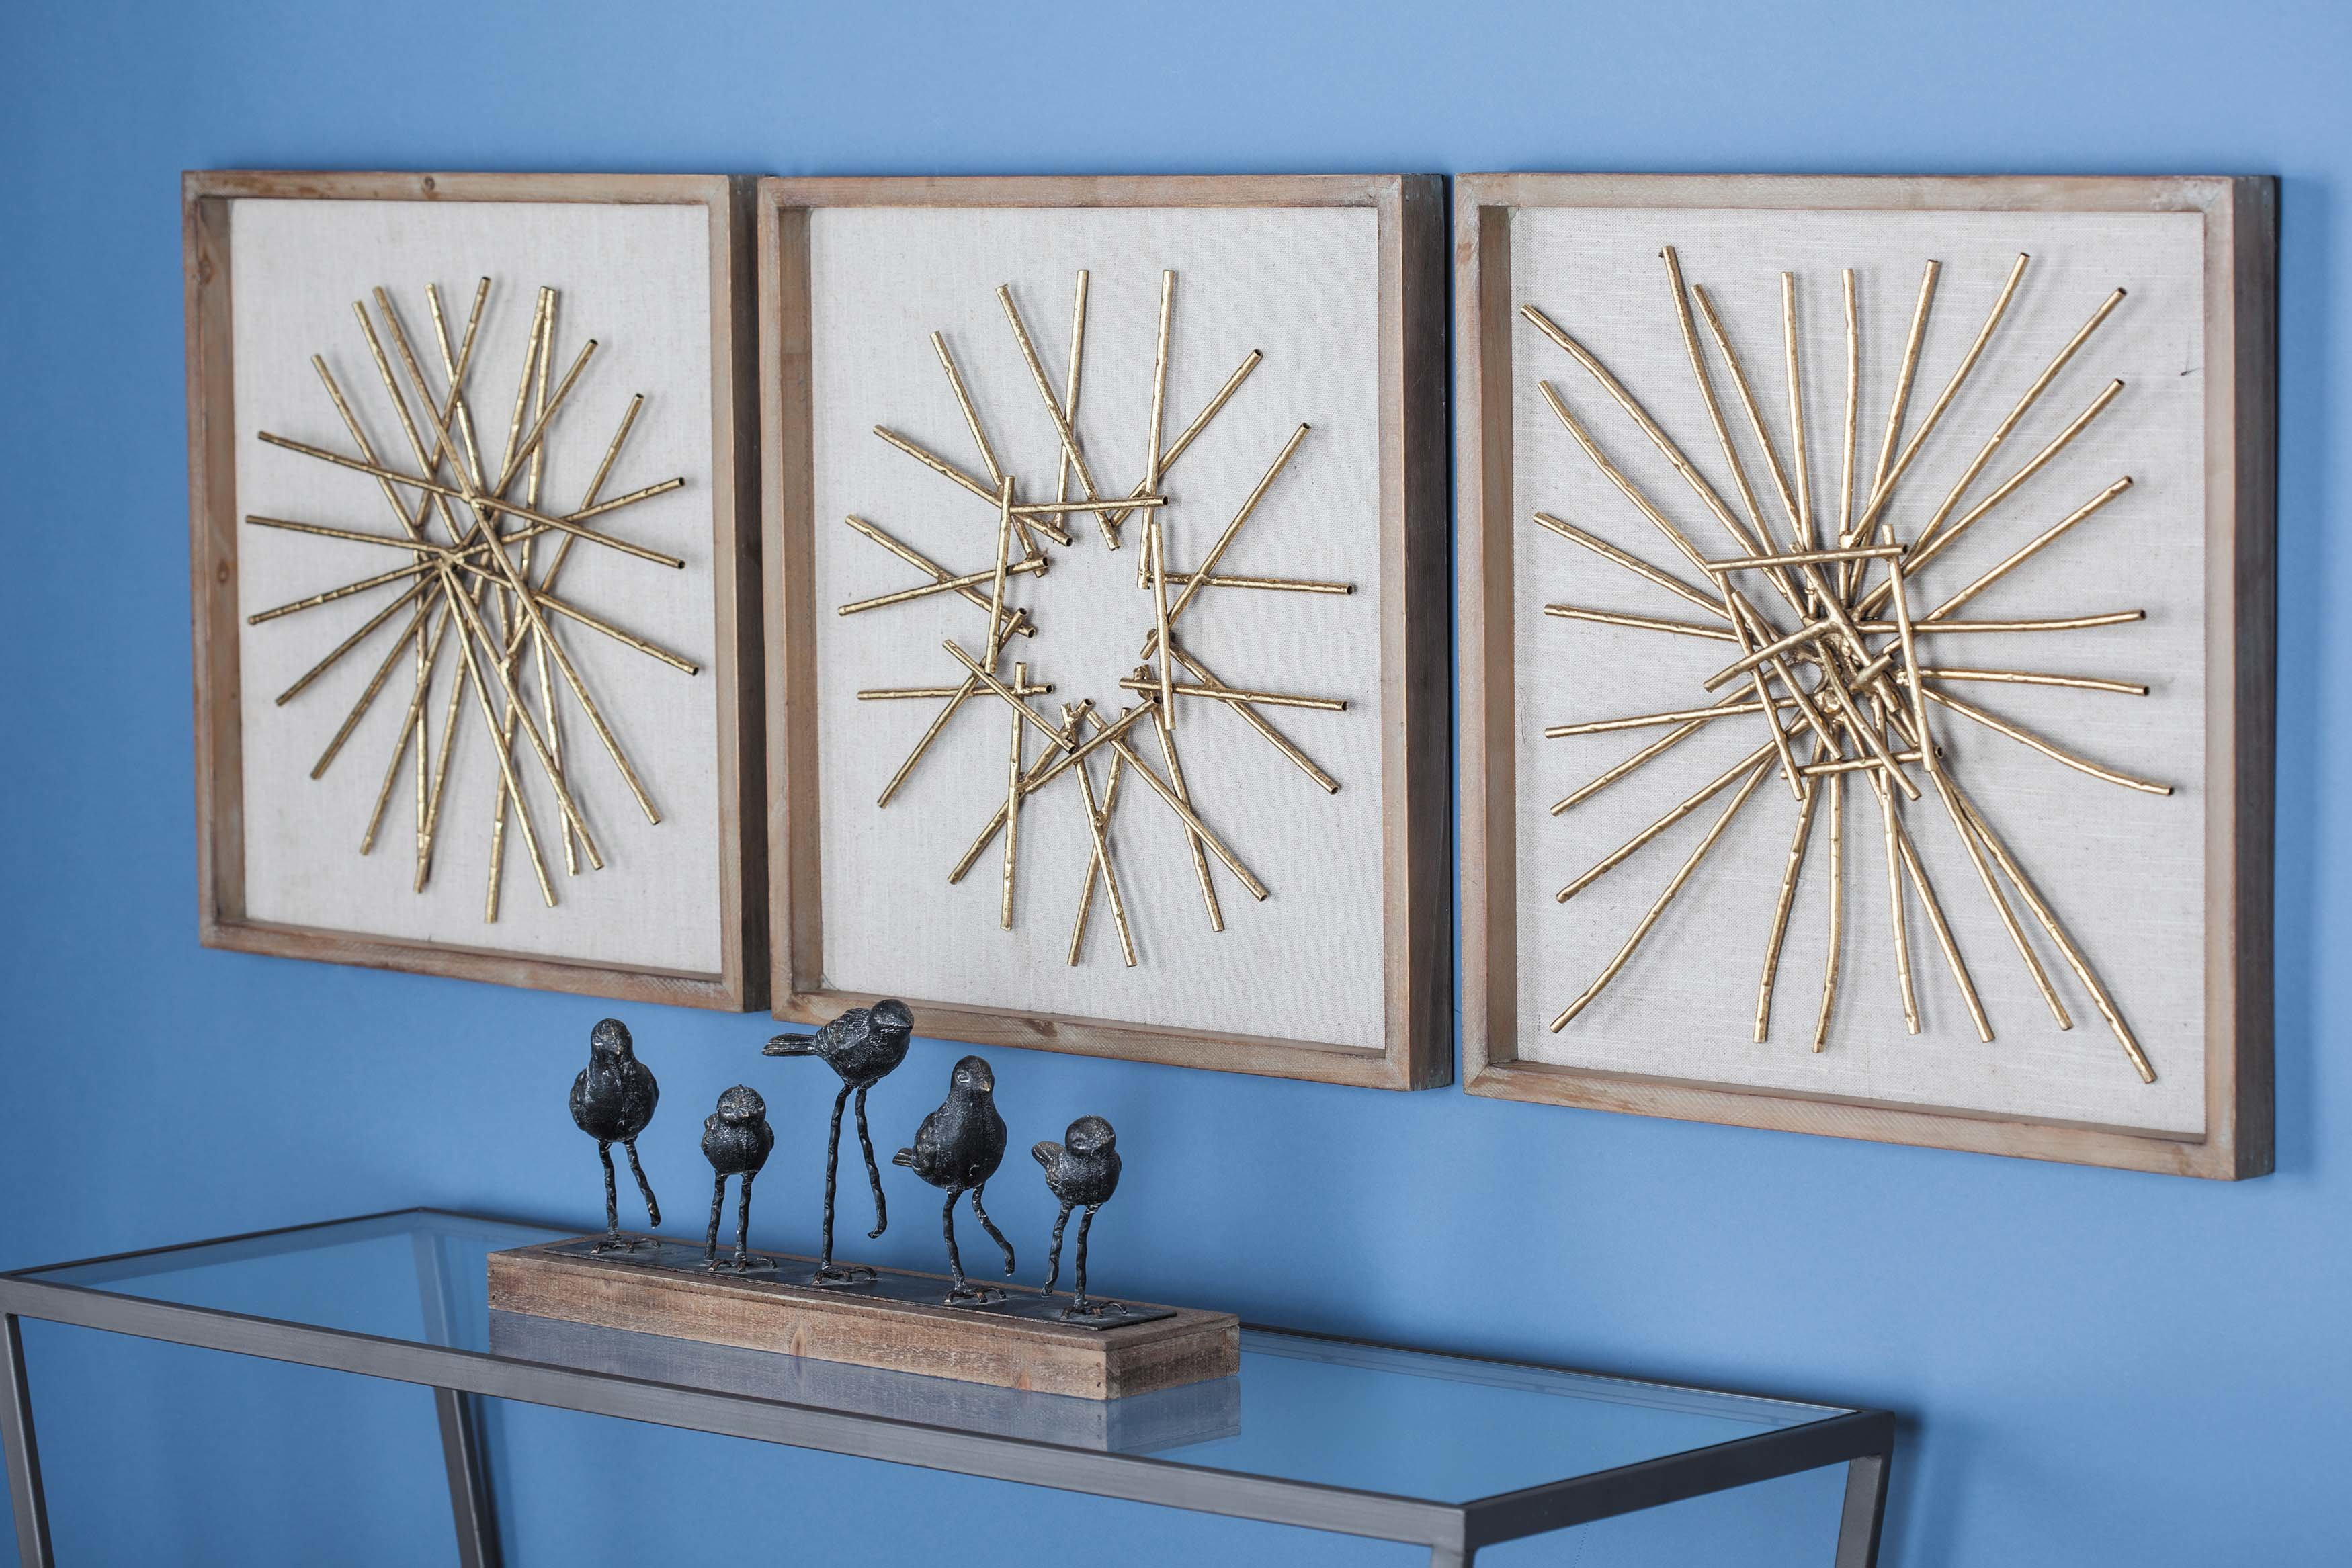 Wayfair Regarding Favorite 3 Piece Wall Decor Sets By Wrought Studio (View 12 of 20)